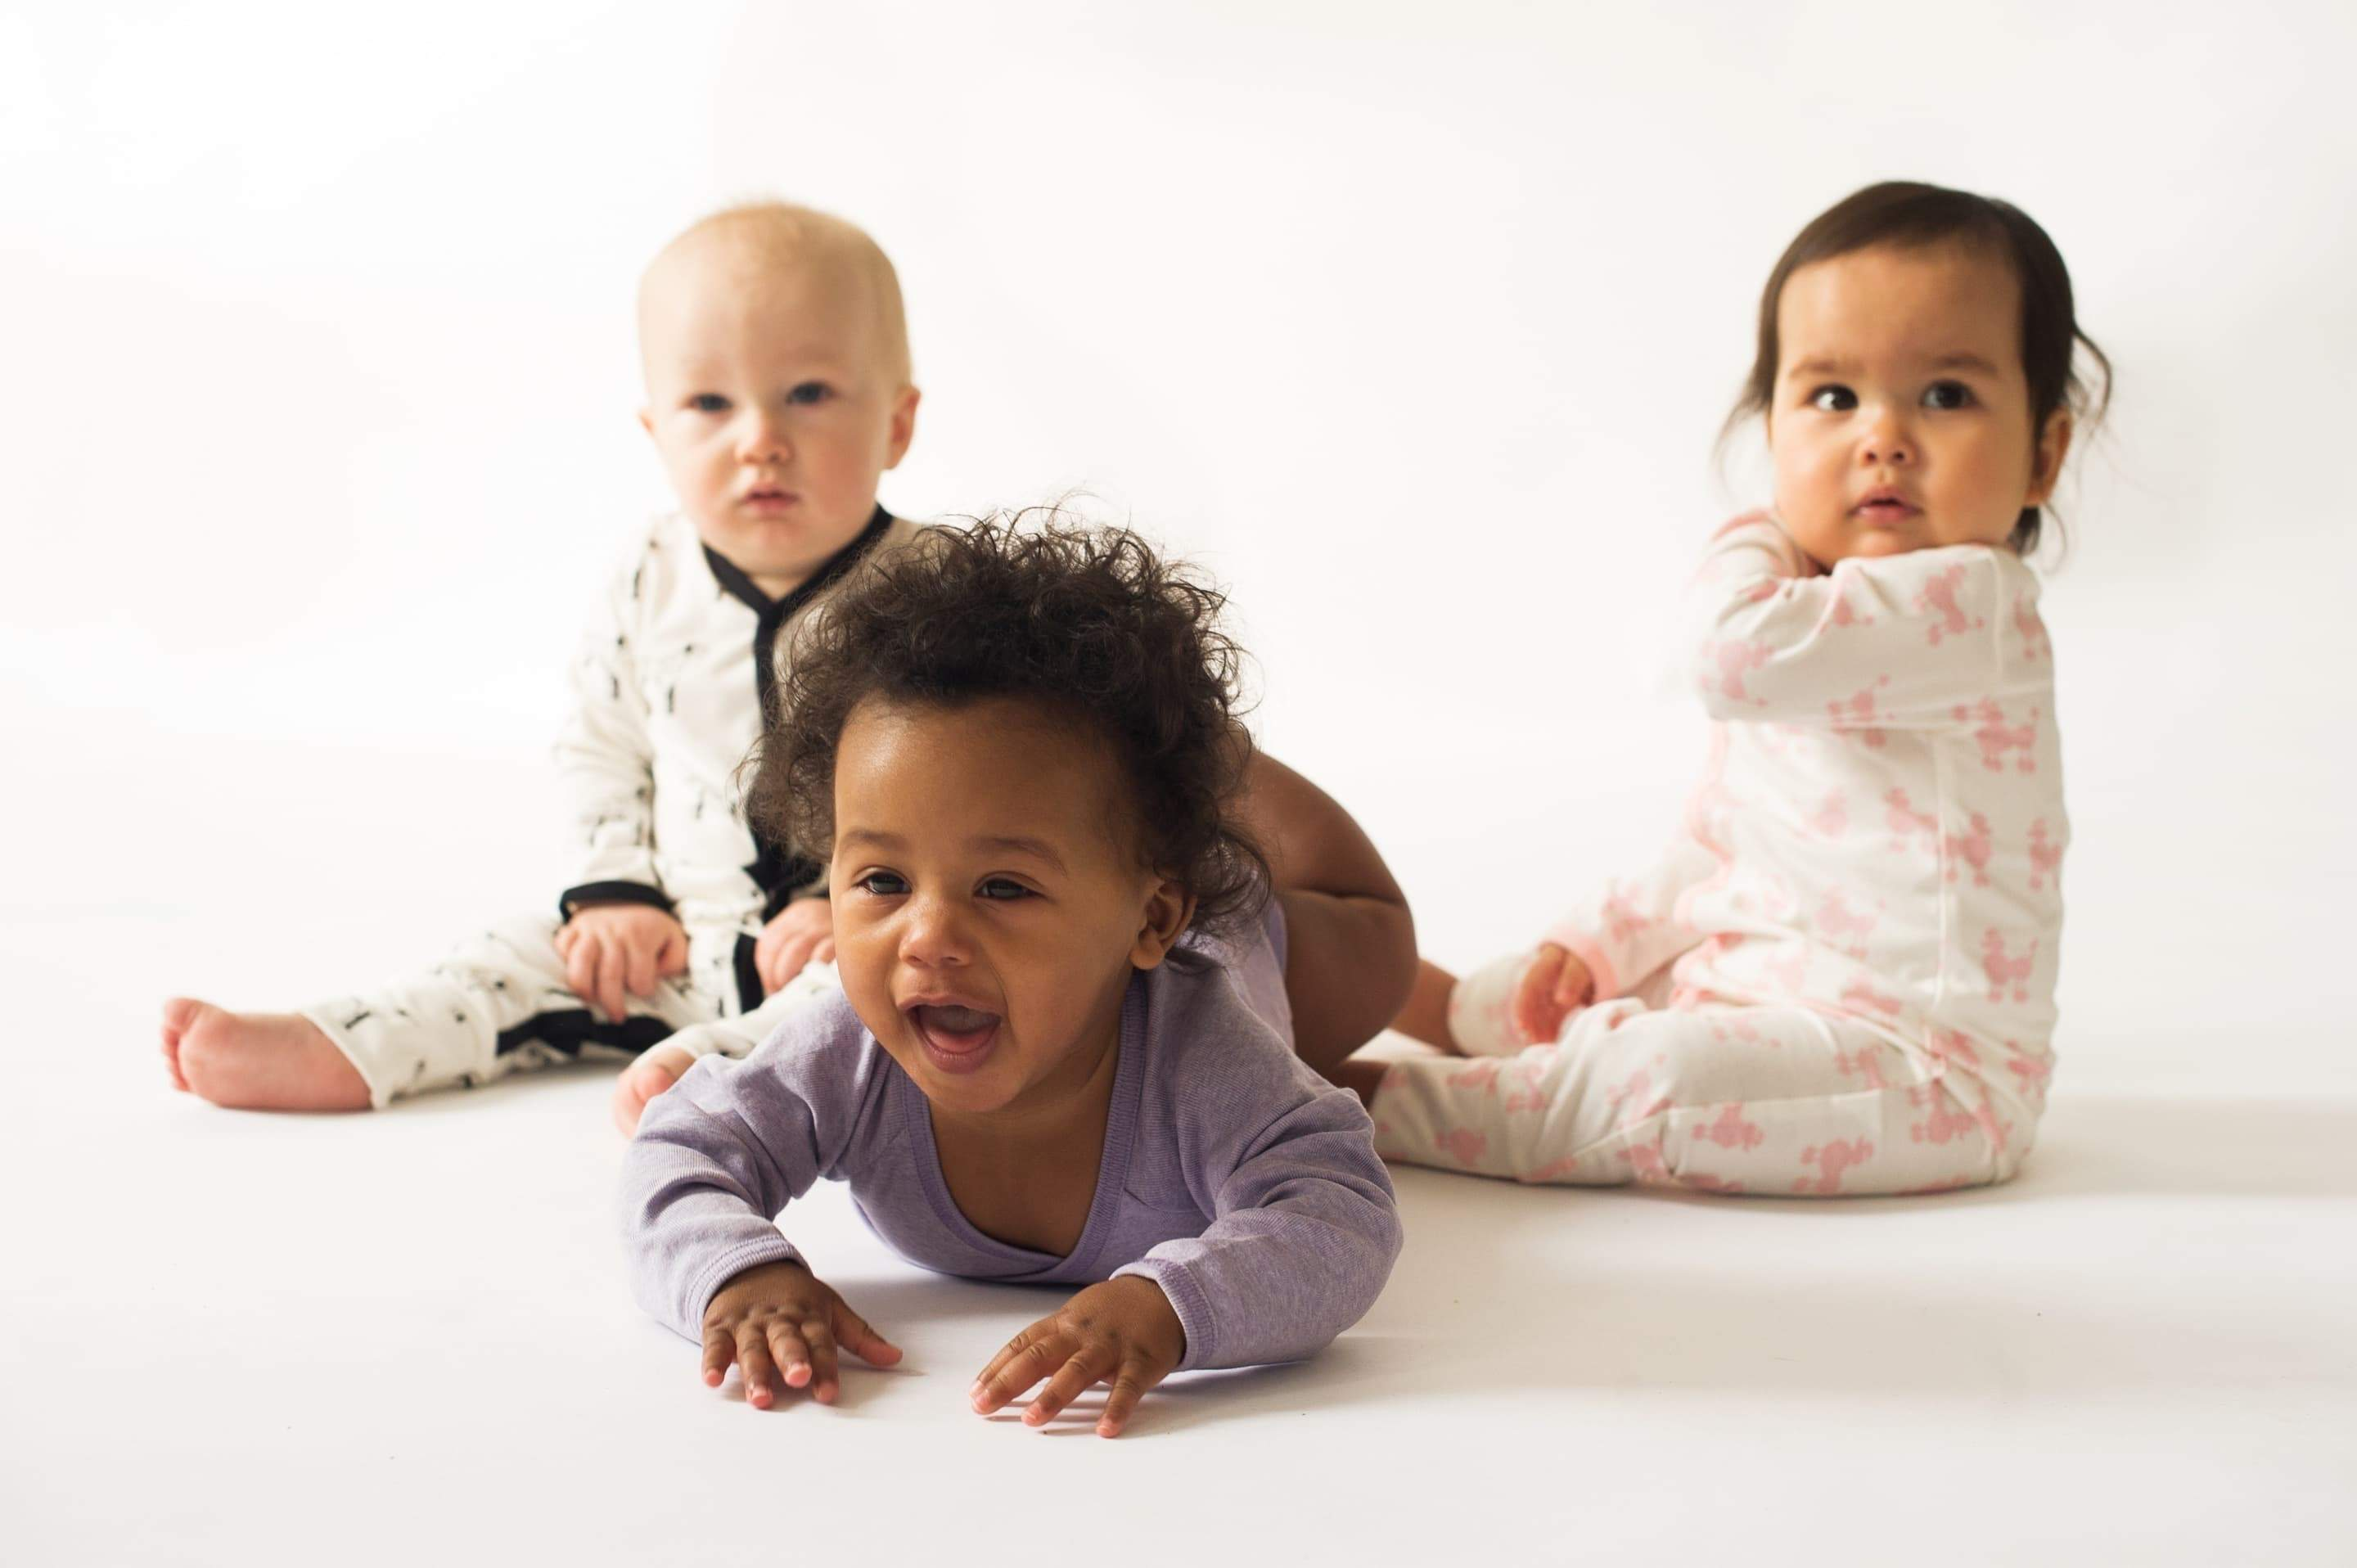 How to play with baby: Newborn to Three-Months-Old